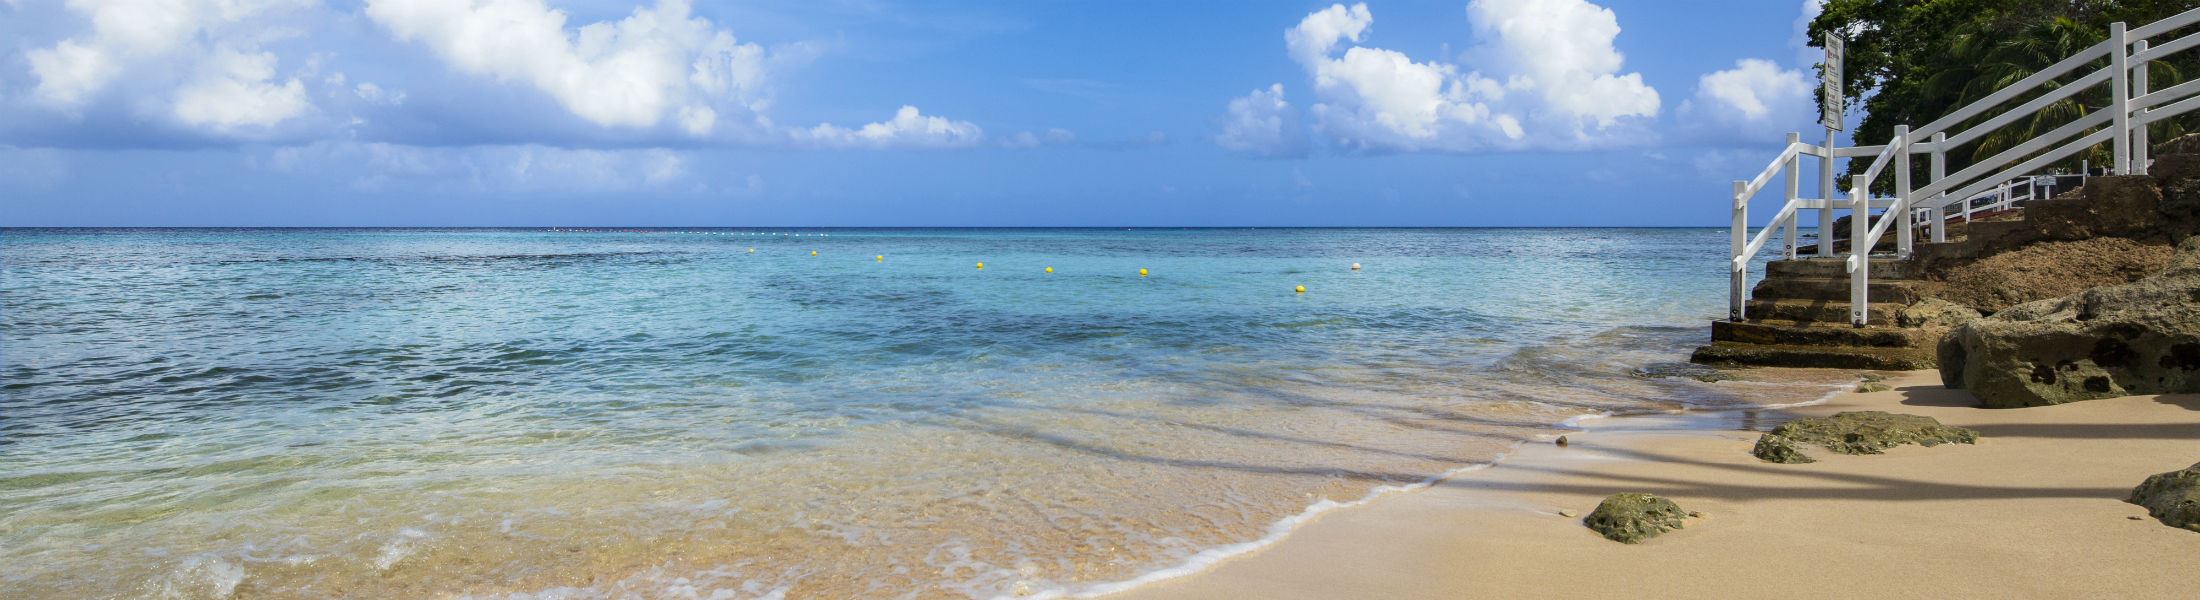 Sandy beach at The Club Barbados Resort & Spa, Barbados